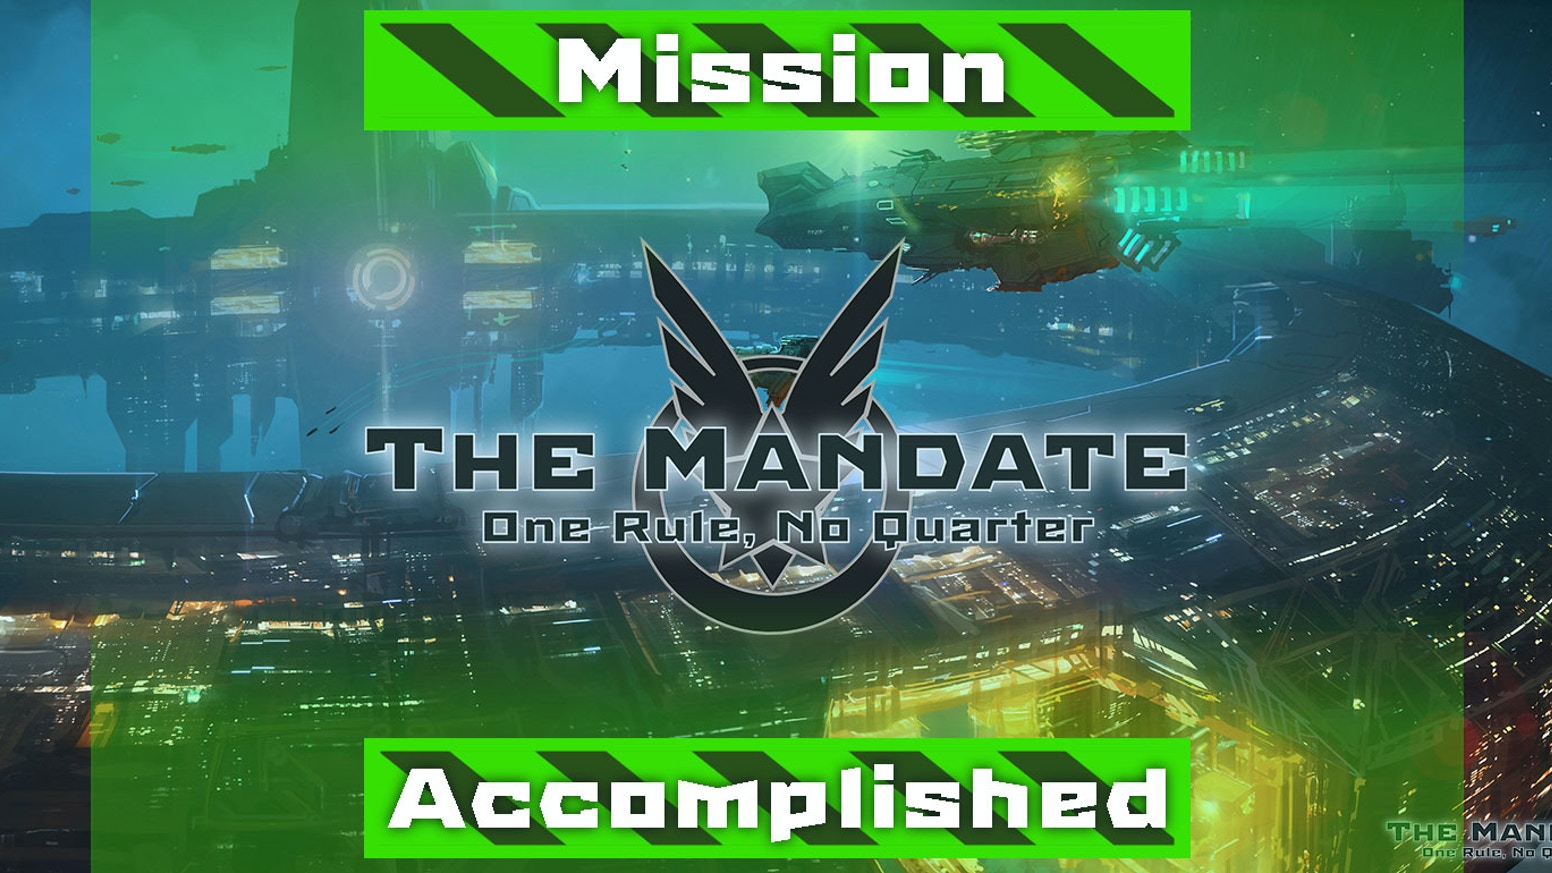 The Mandate By Perihelion Interactive Llc Kickstarter Central Circuit Board Part No 10 Singapore Hobby Supplies Pte Ltd As Captain Of A Starship You Lead Crew Through Galaxy Where